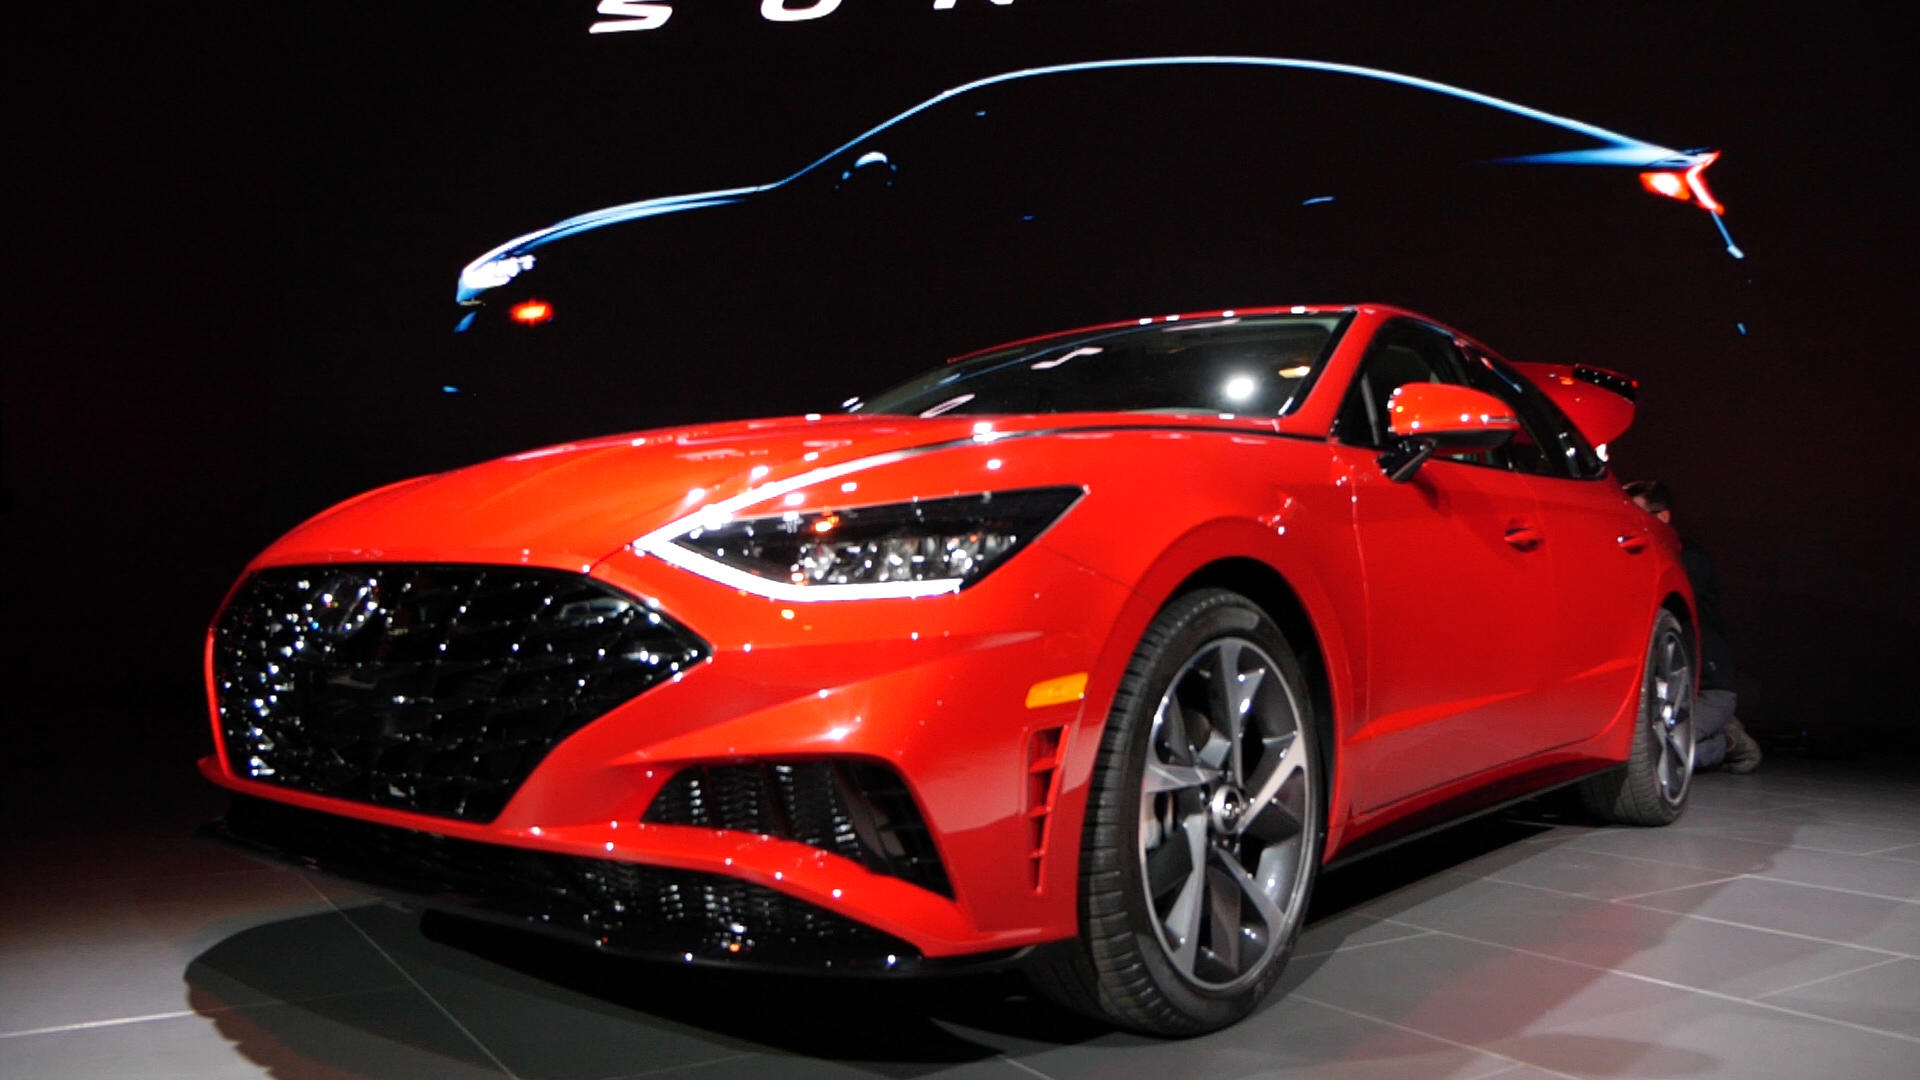 Video: 2020 Hyundai Sonata brings an extra dose of style to New York Auto Show